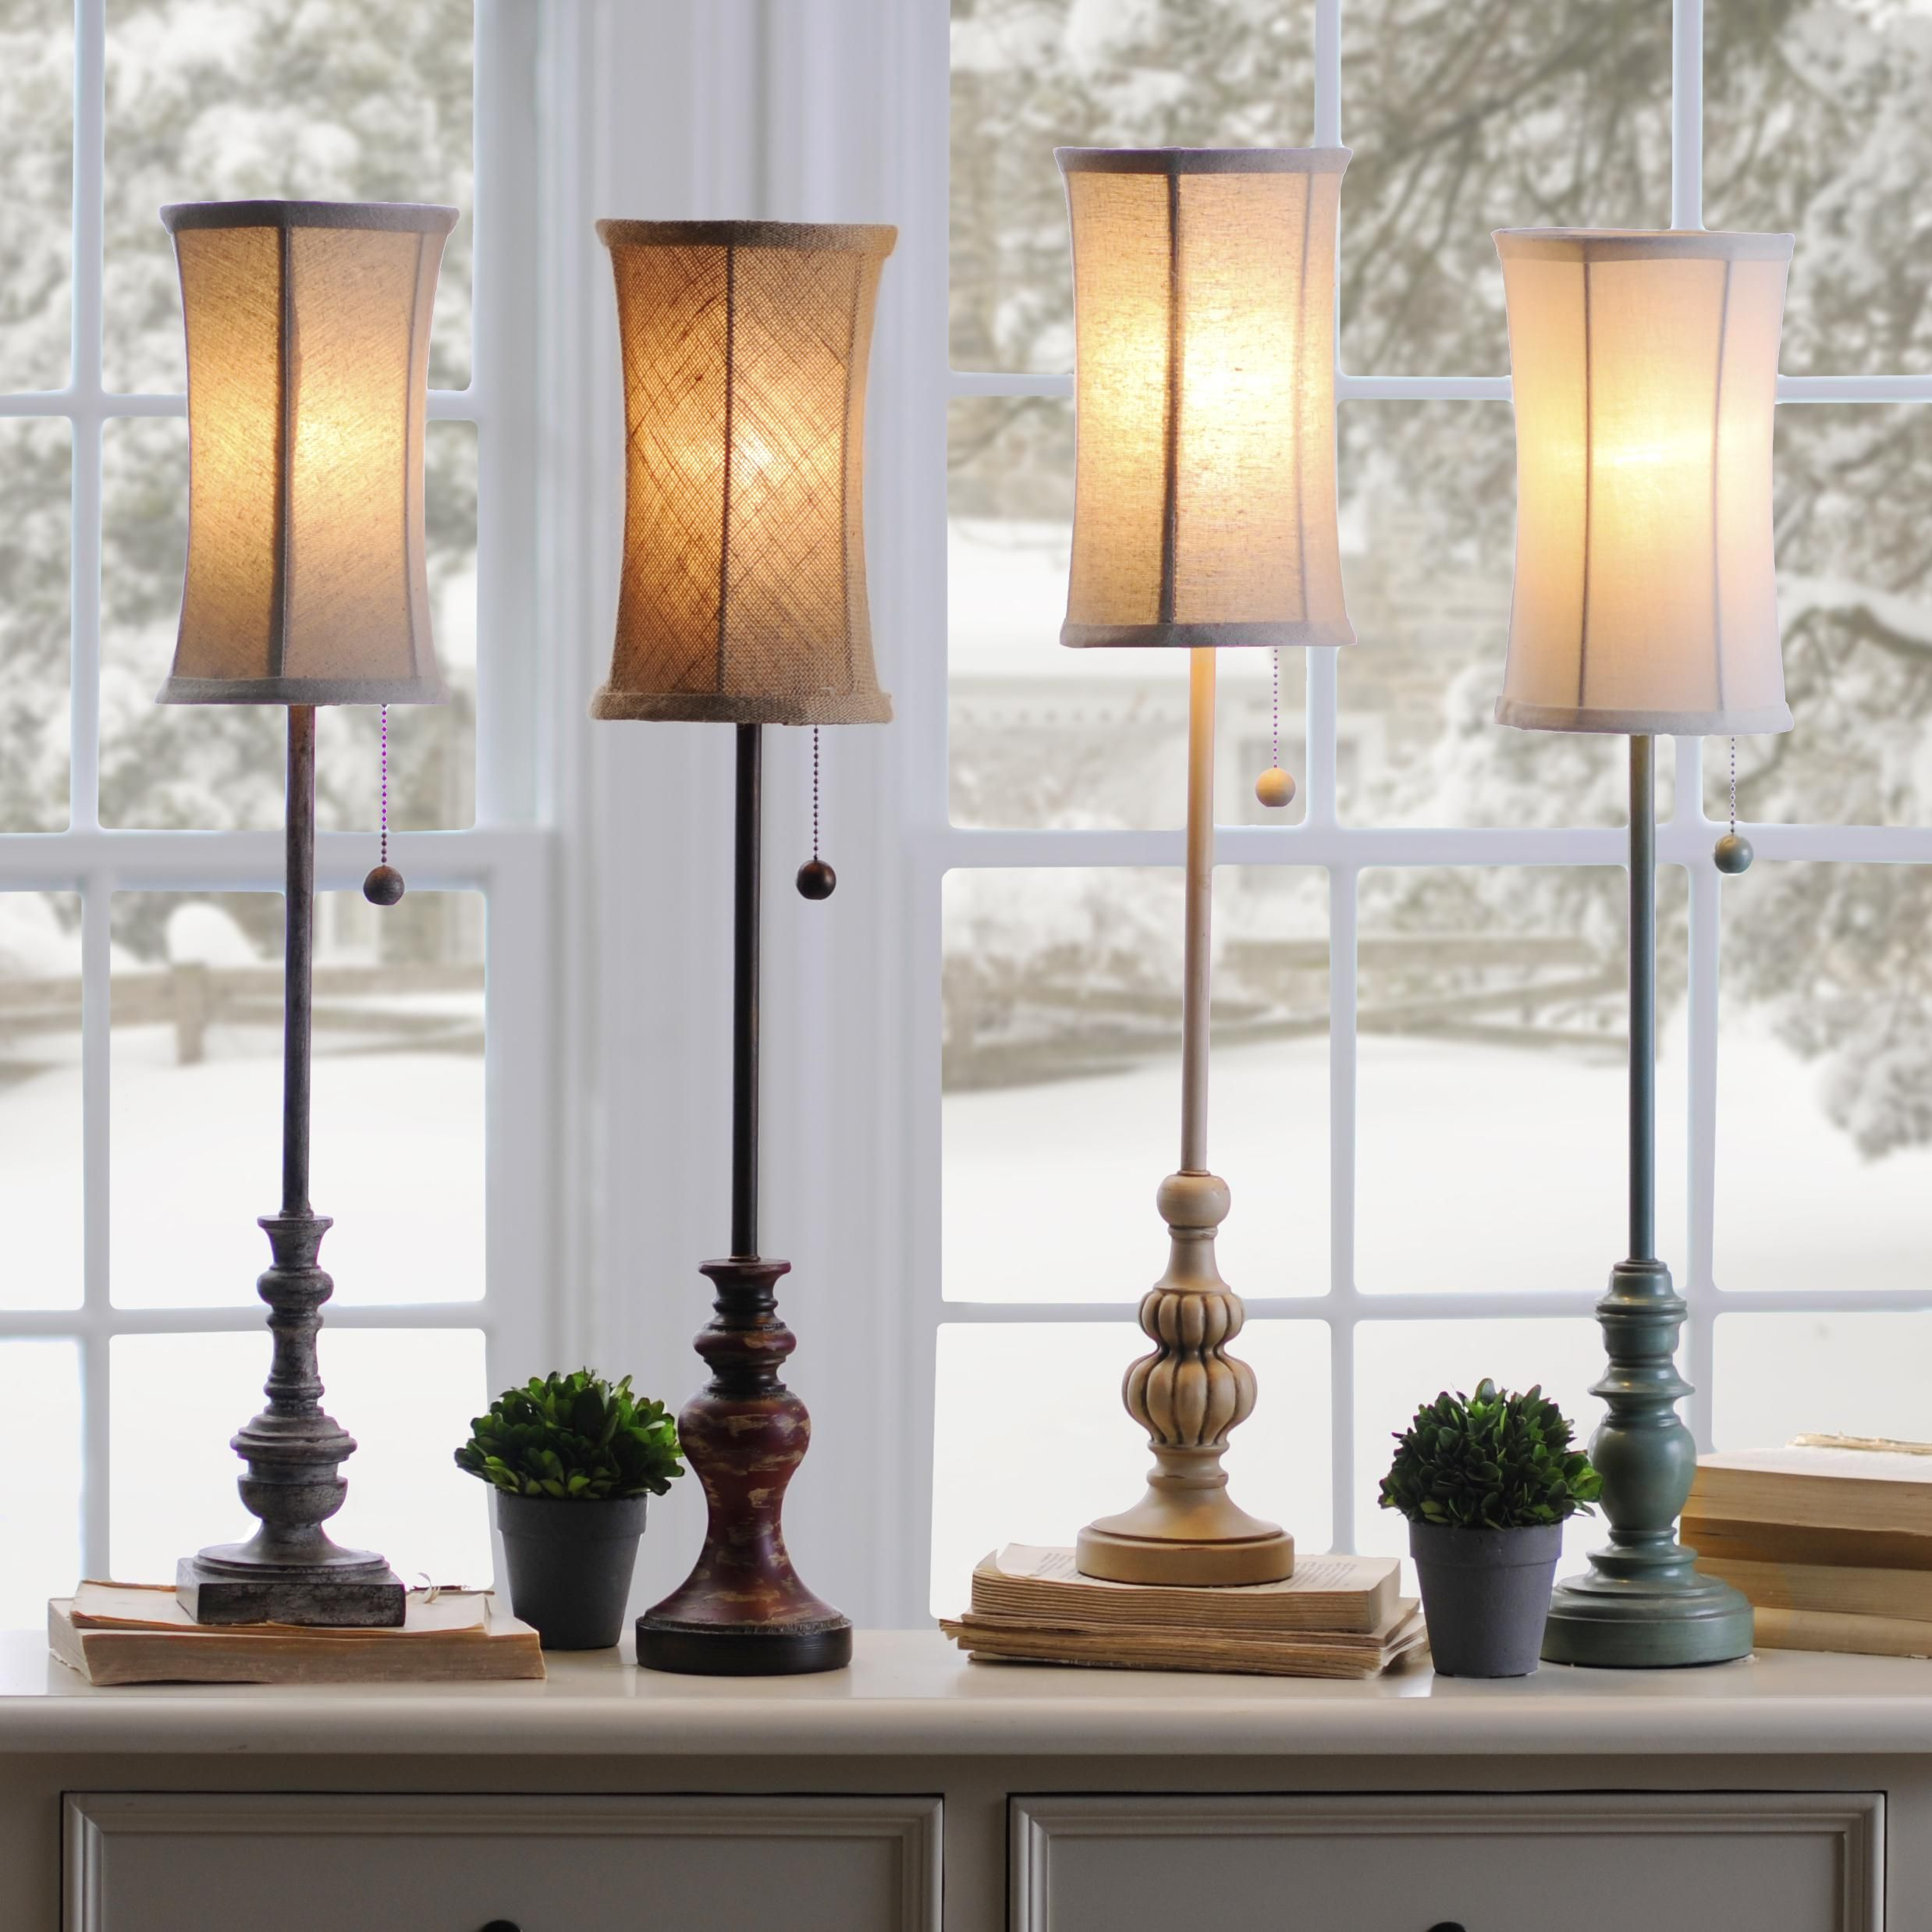 Buffet Lamps Are Perfect For Small Tables Or When You Have Limited